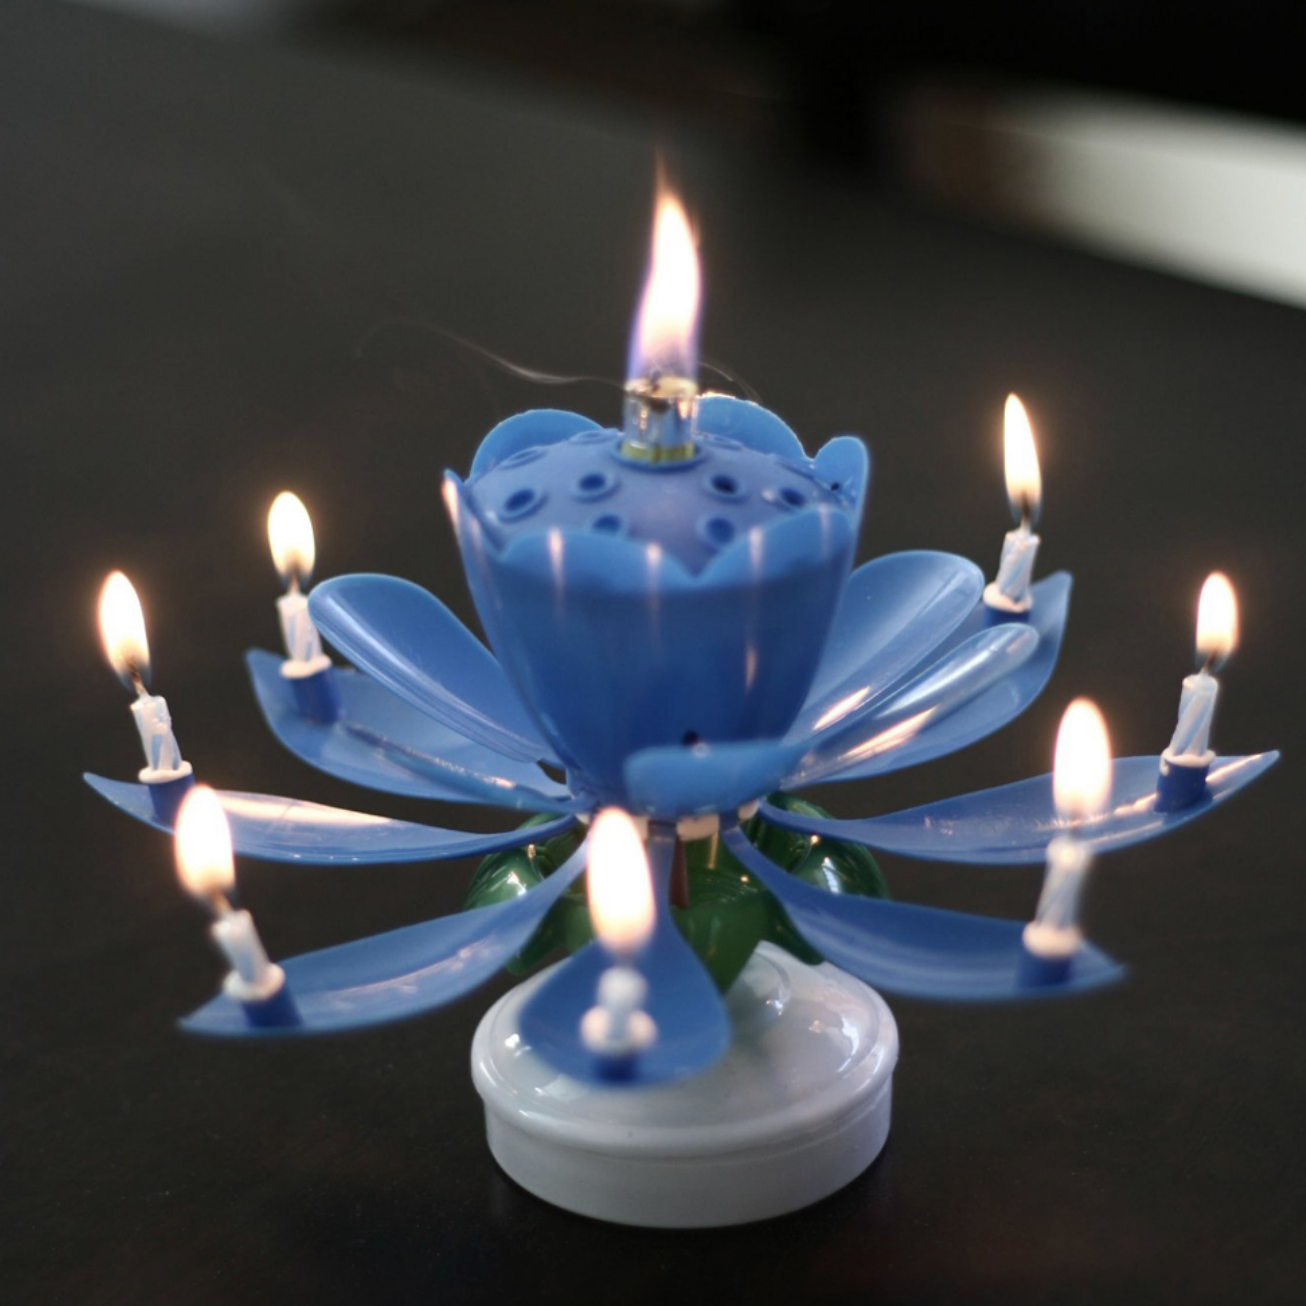 Magical lotus rotating flower candle for birthday cakes and more magical lotus rotating flower candle for birthday cakes and more buy1more izmirmasajfo